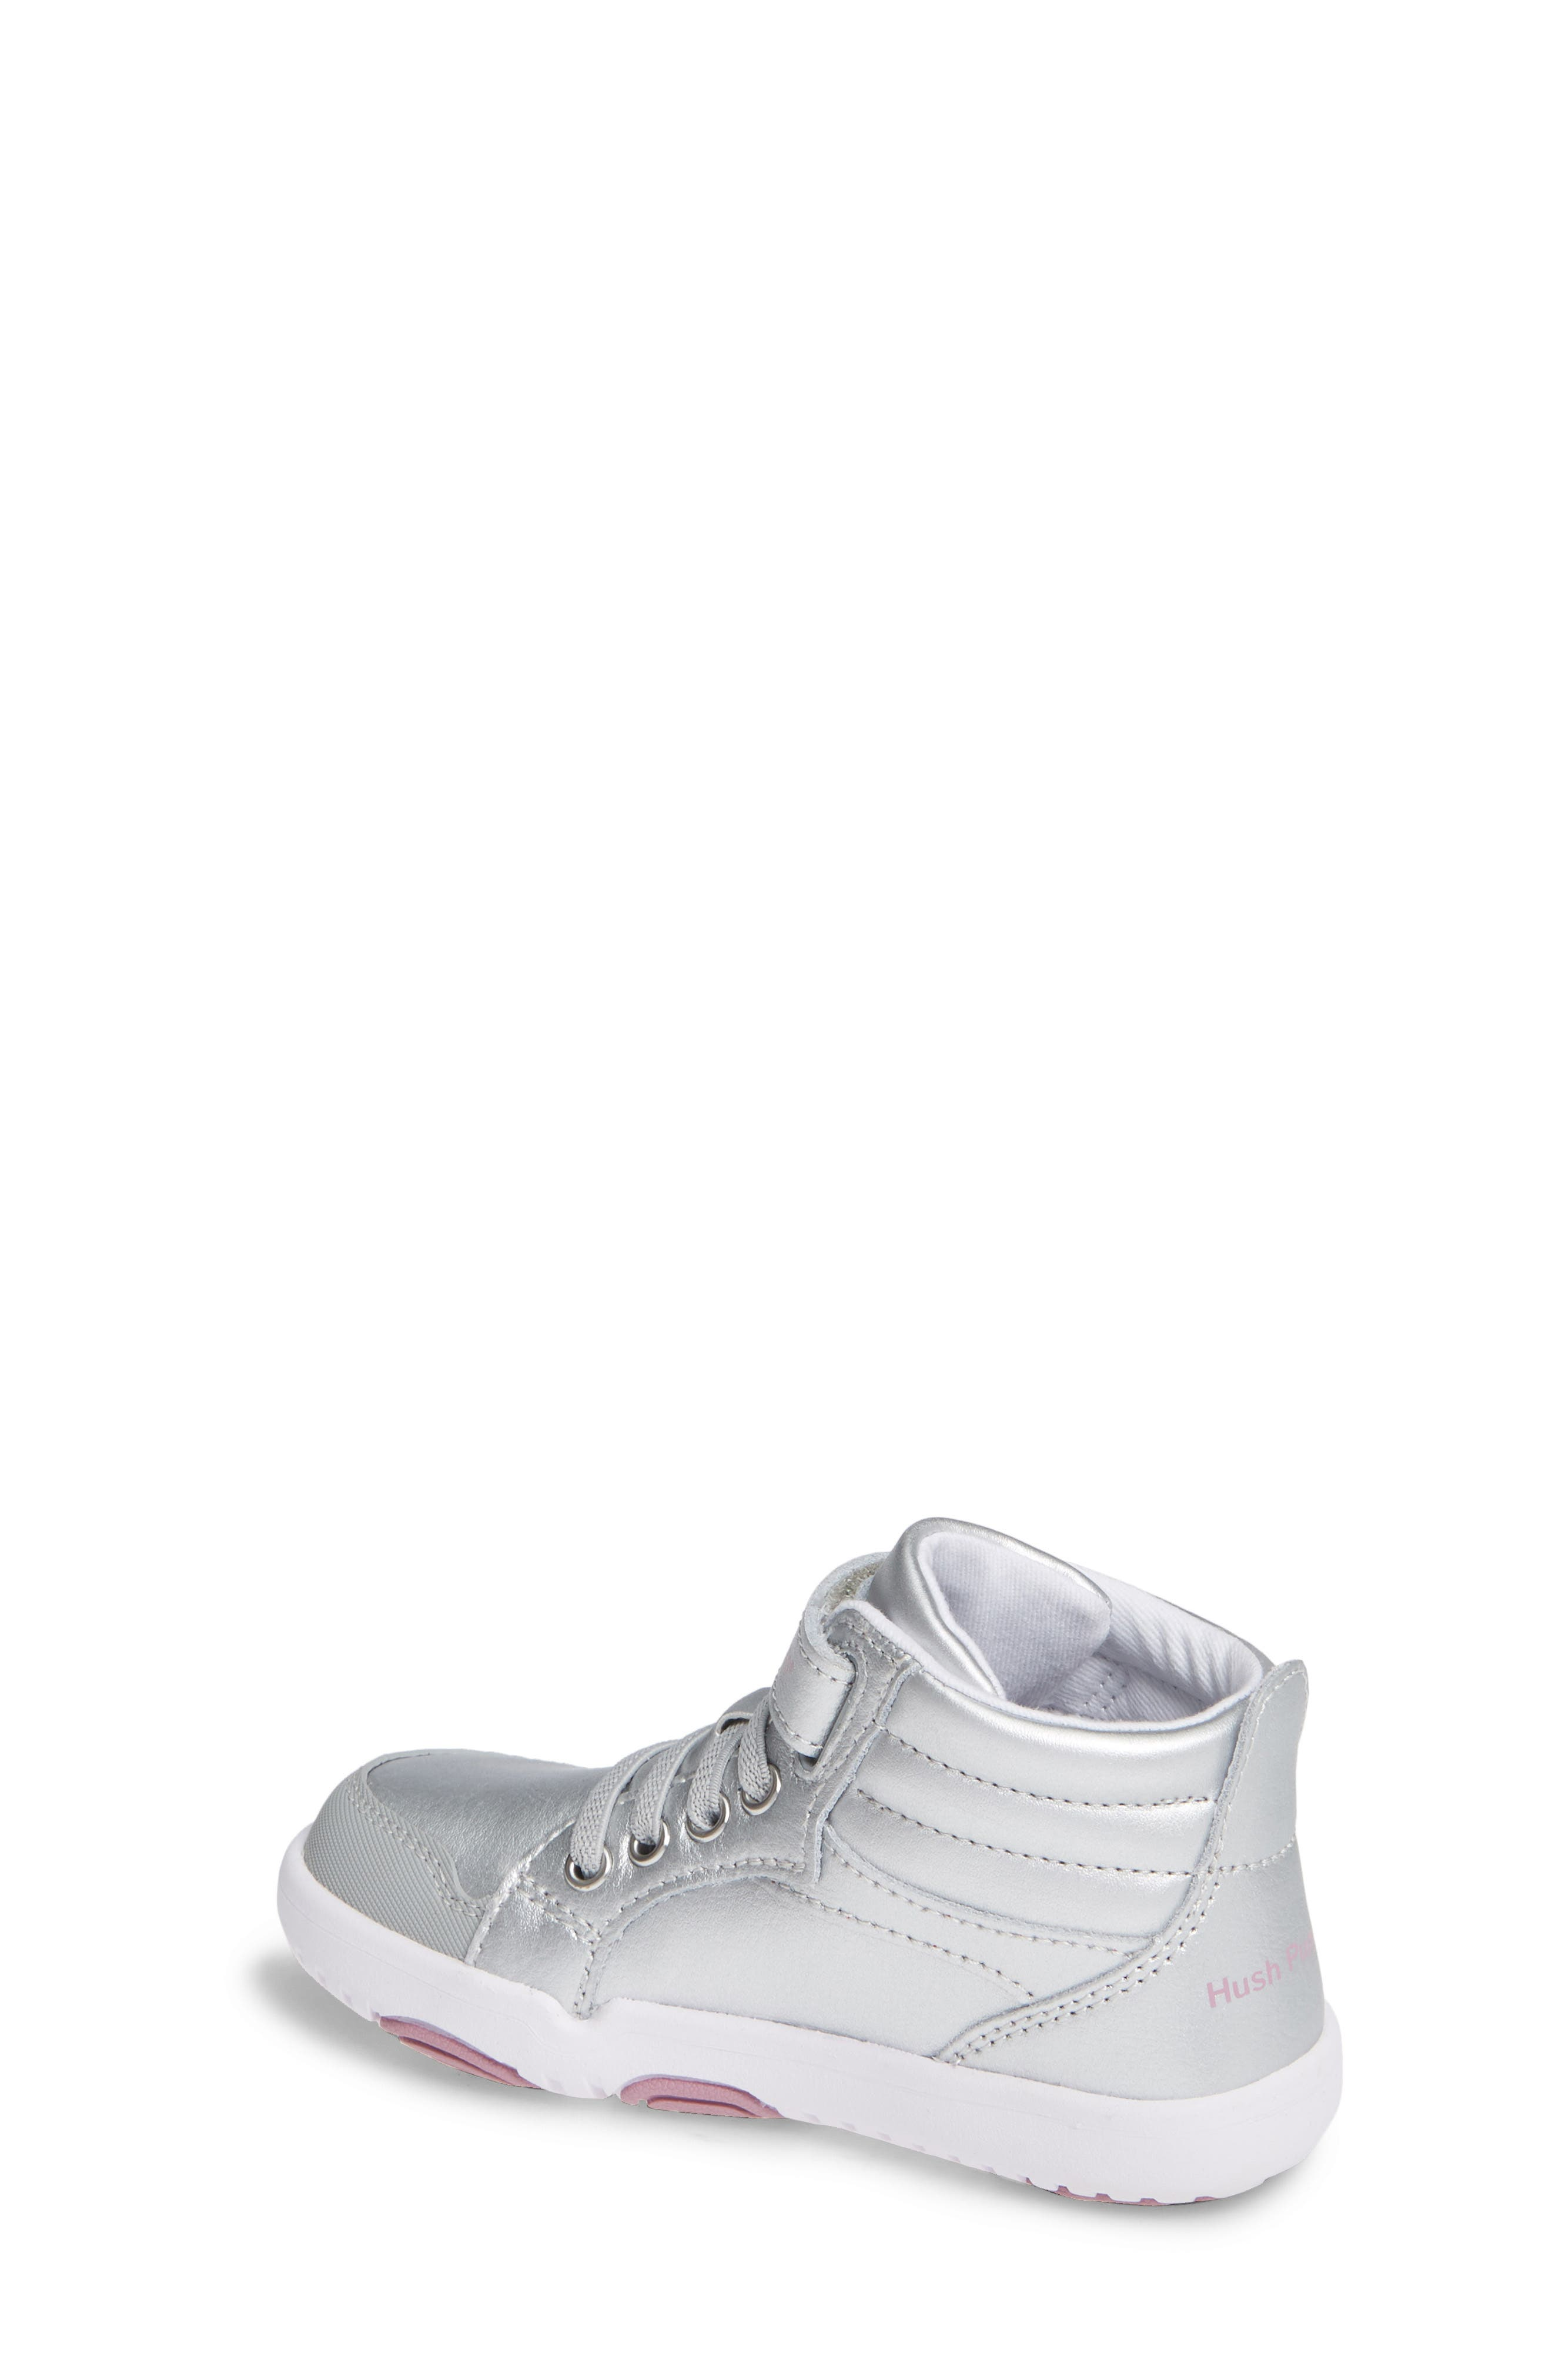 Buddy High Top Sneaker,                             Alternate thumbnail 2, color,                             SILVER